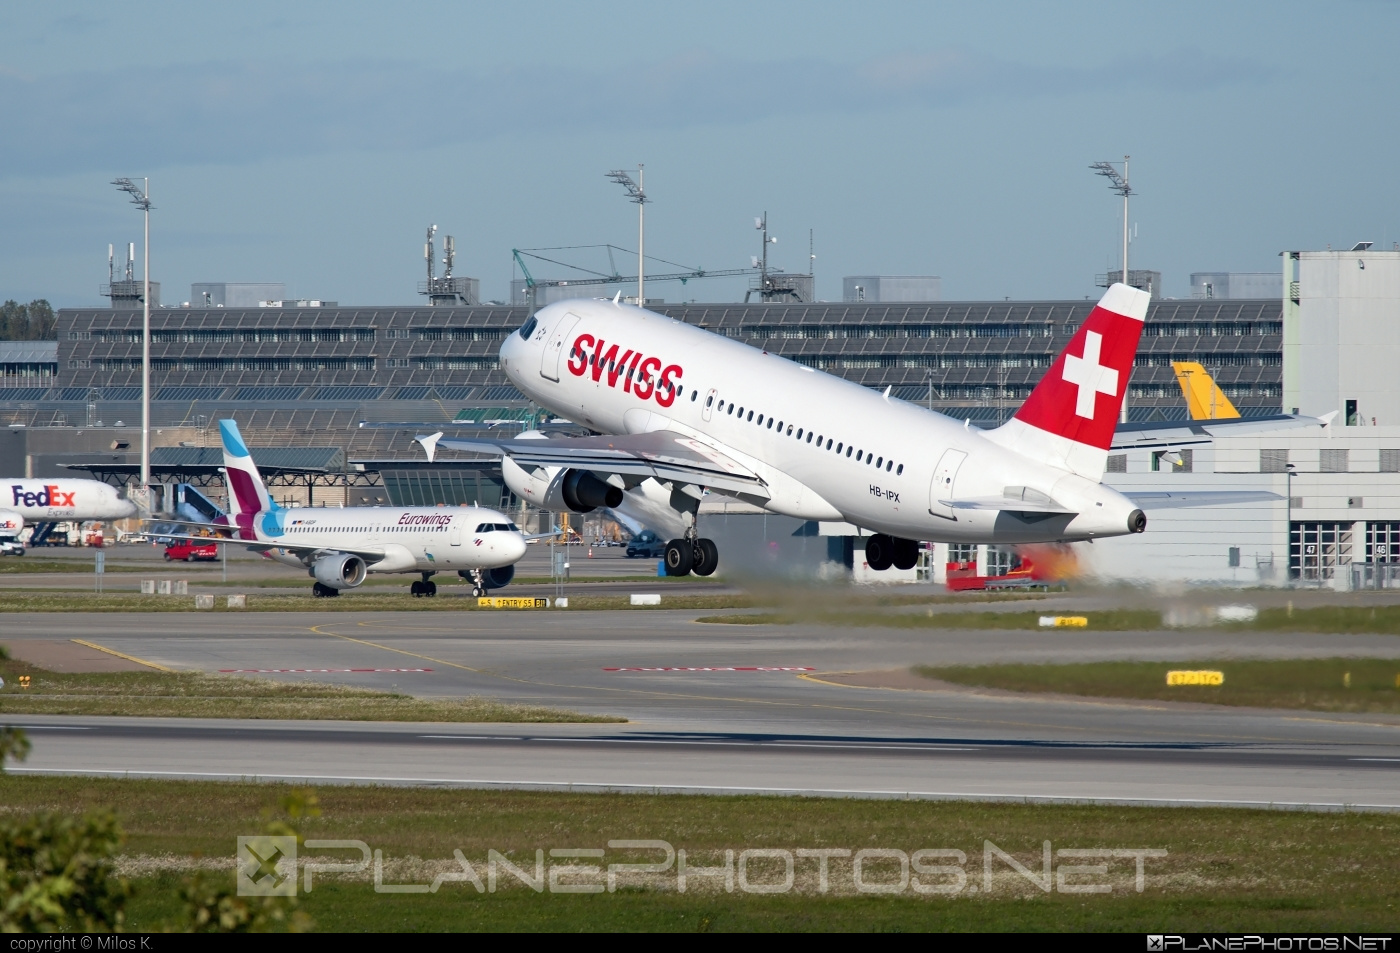 Airbus A319-111 - HB-IPX operated by Swiss International Air Lines #a319 #a320family #airbus #airbus319 #swiss #swissairlines